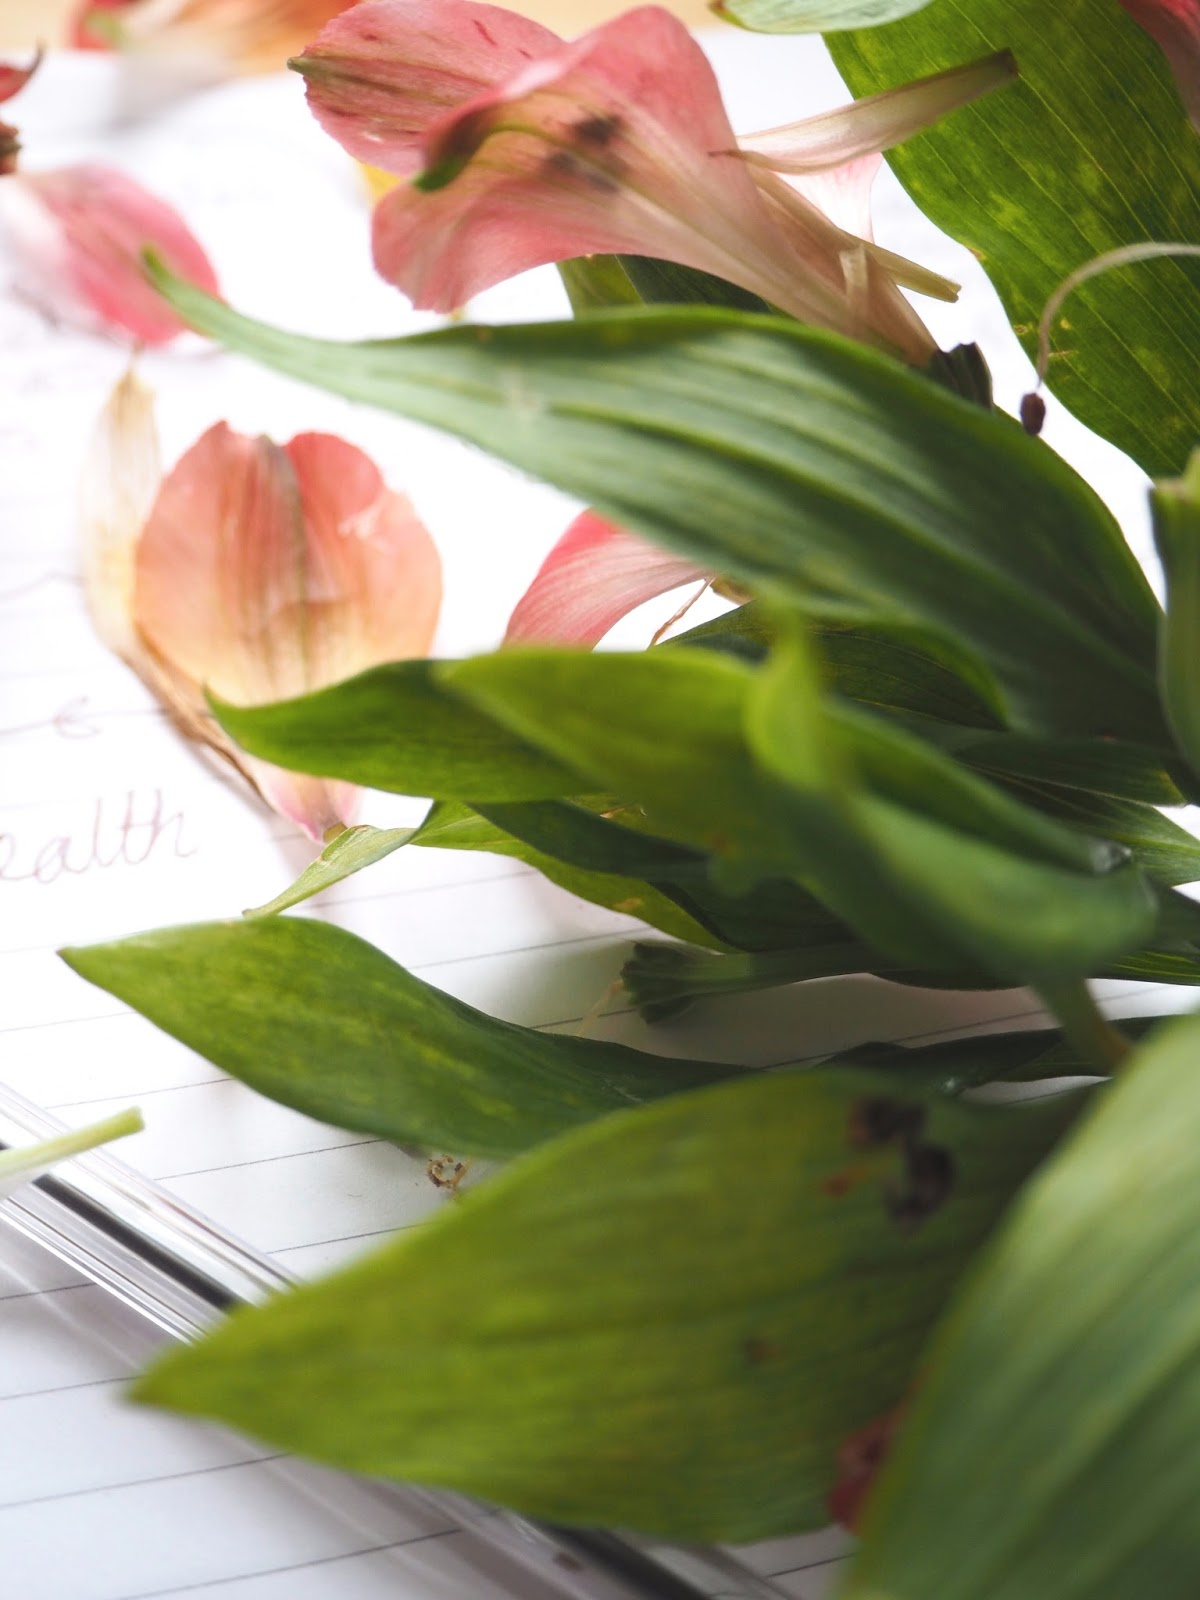 5 things that help me with my mental health   Mental health tips for a better day   Love, Maisie   www.lovemaisie.com